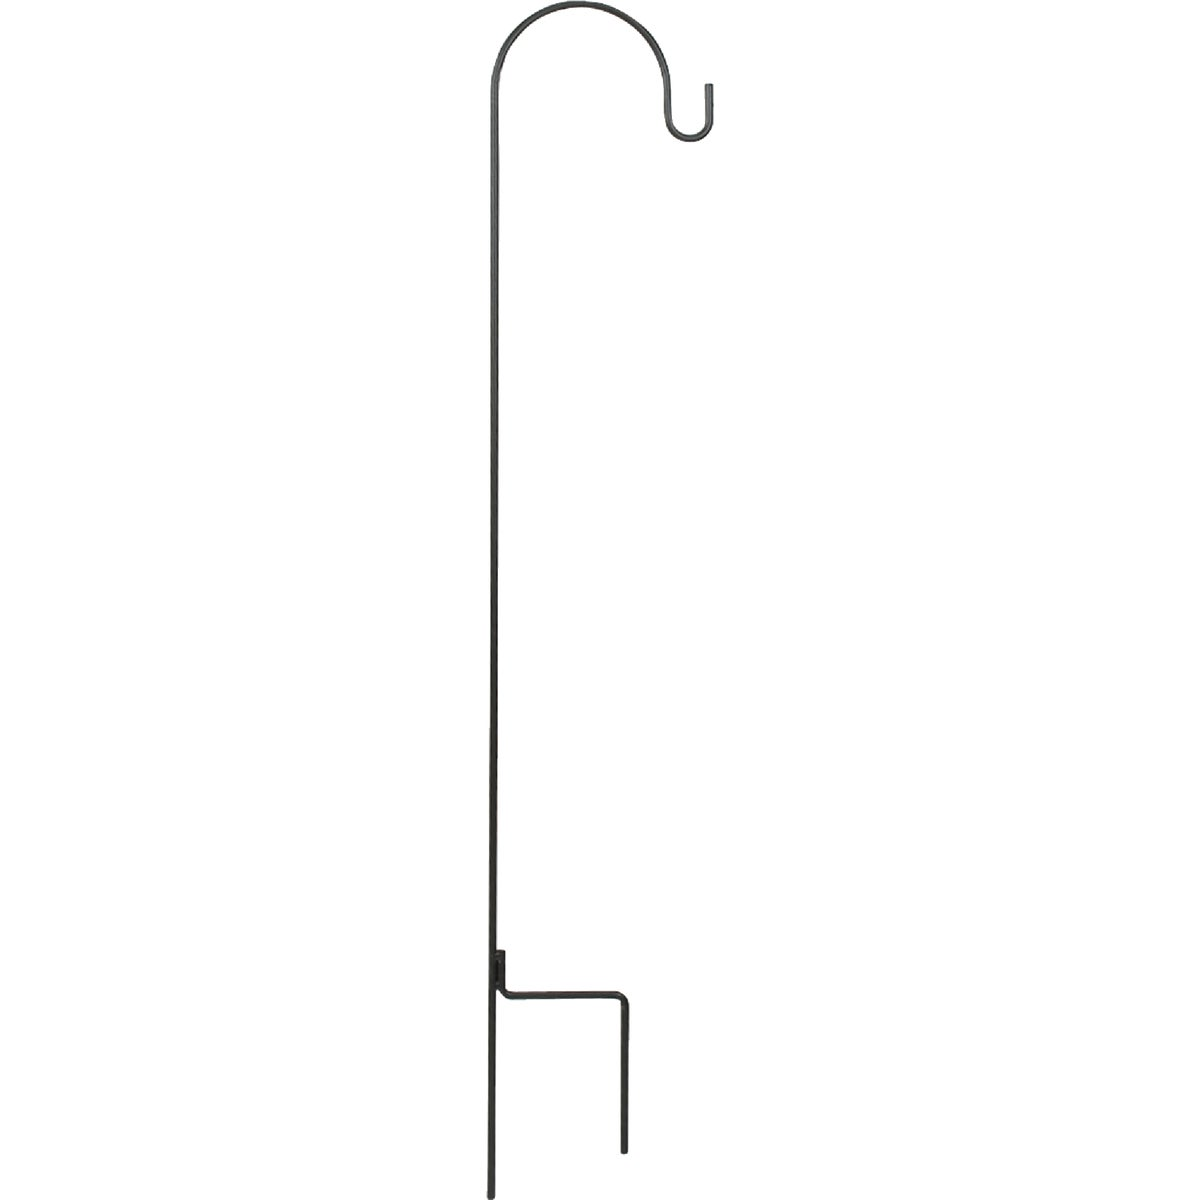 "64"" BLACK SINGLE HANGER - 64SH125B by Do it Best"